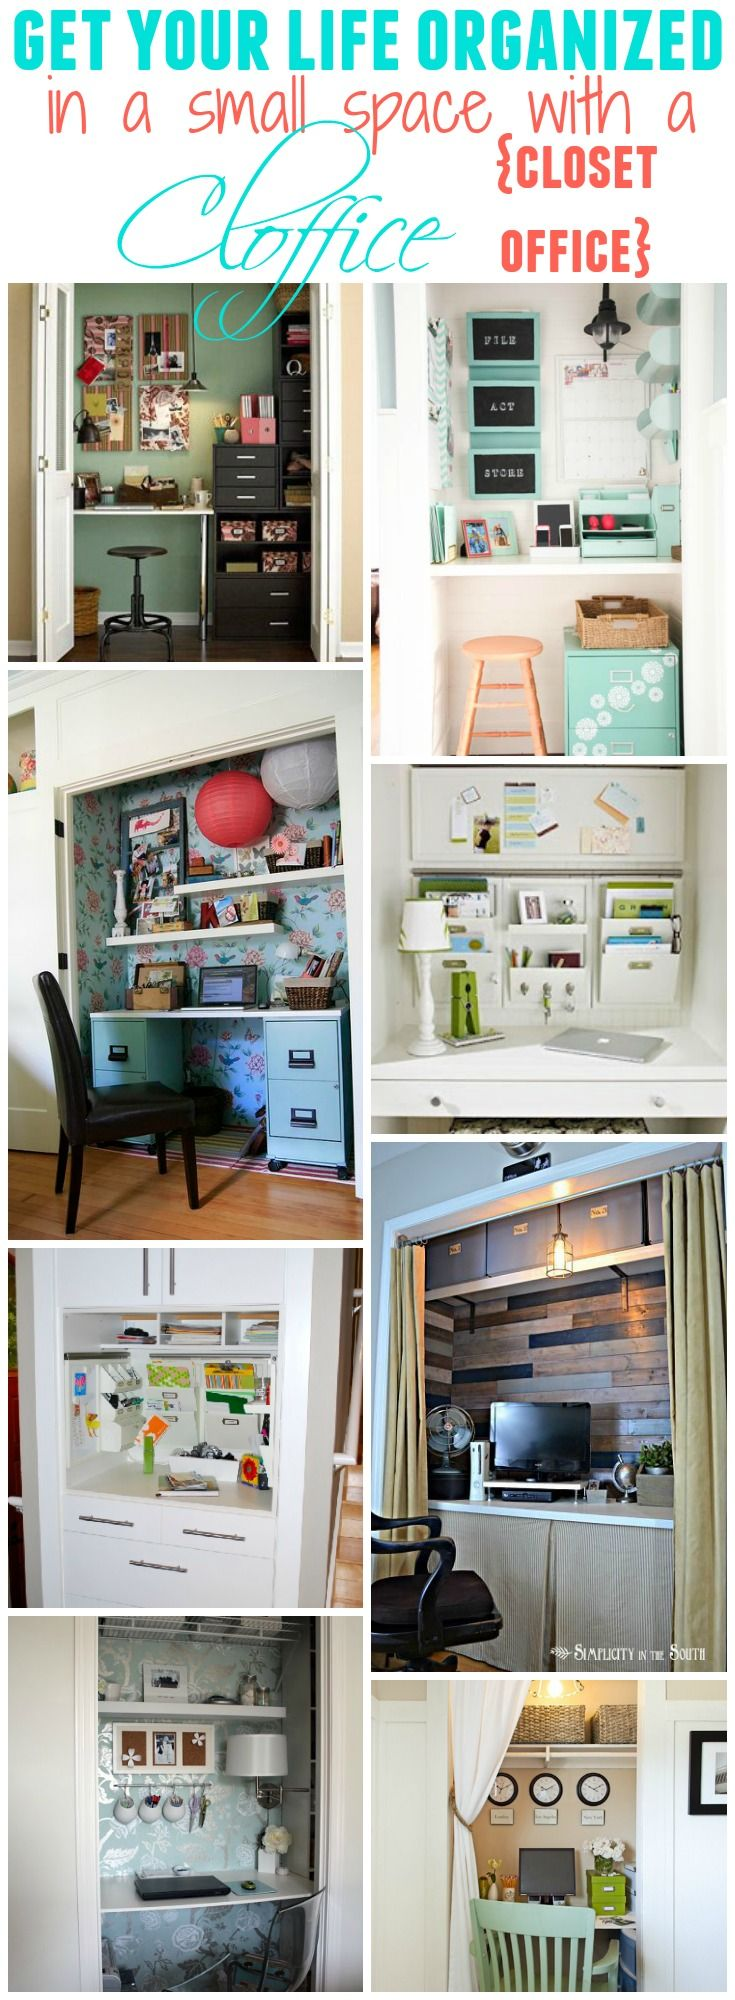 Get your whole life organized in a small space by converting a closet into a little office - or command central - 15 fabulous spaces to see at The Happy Housie